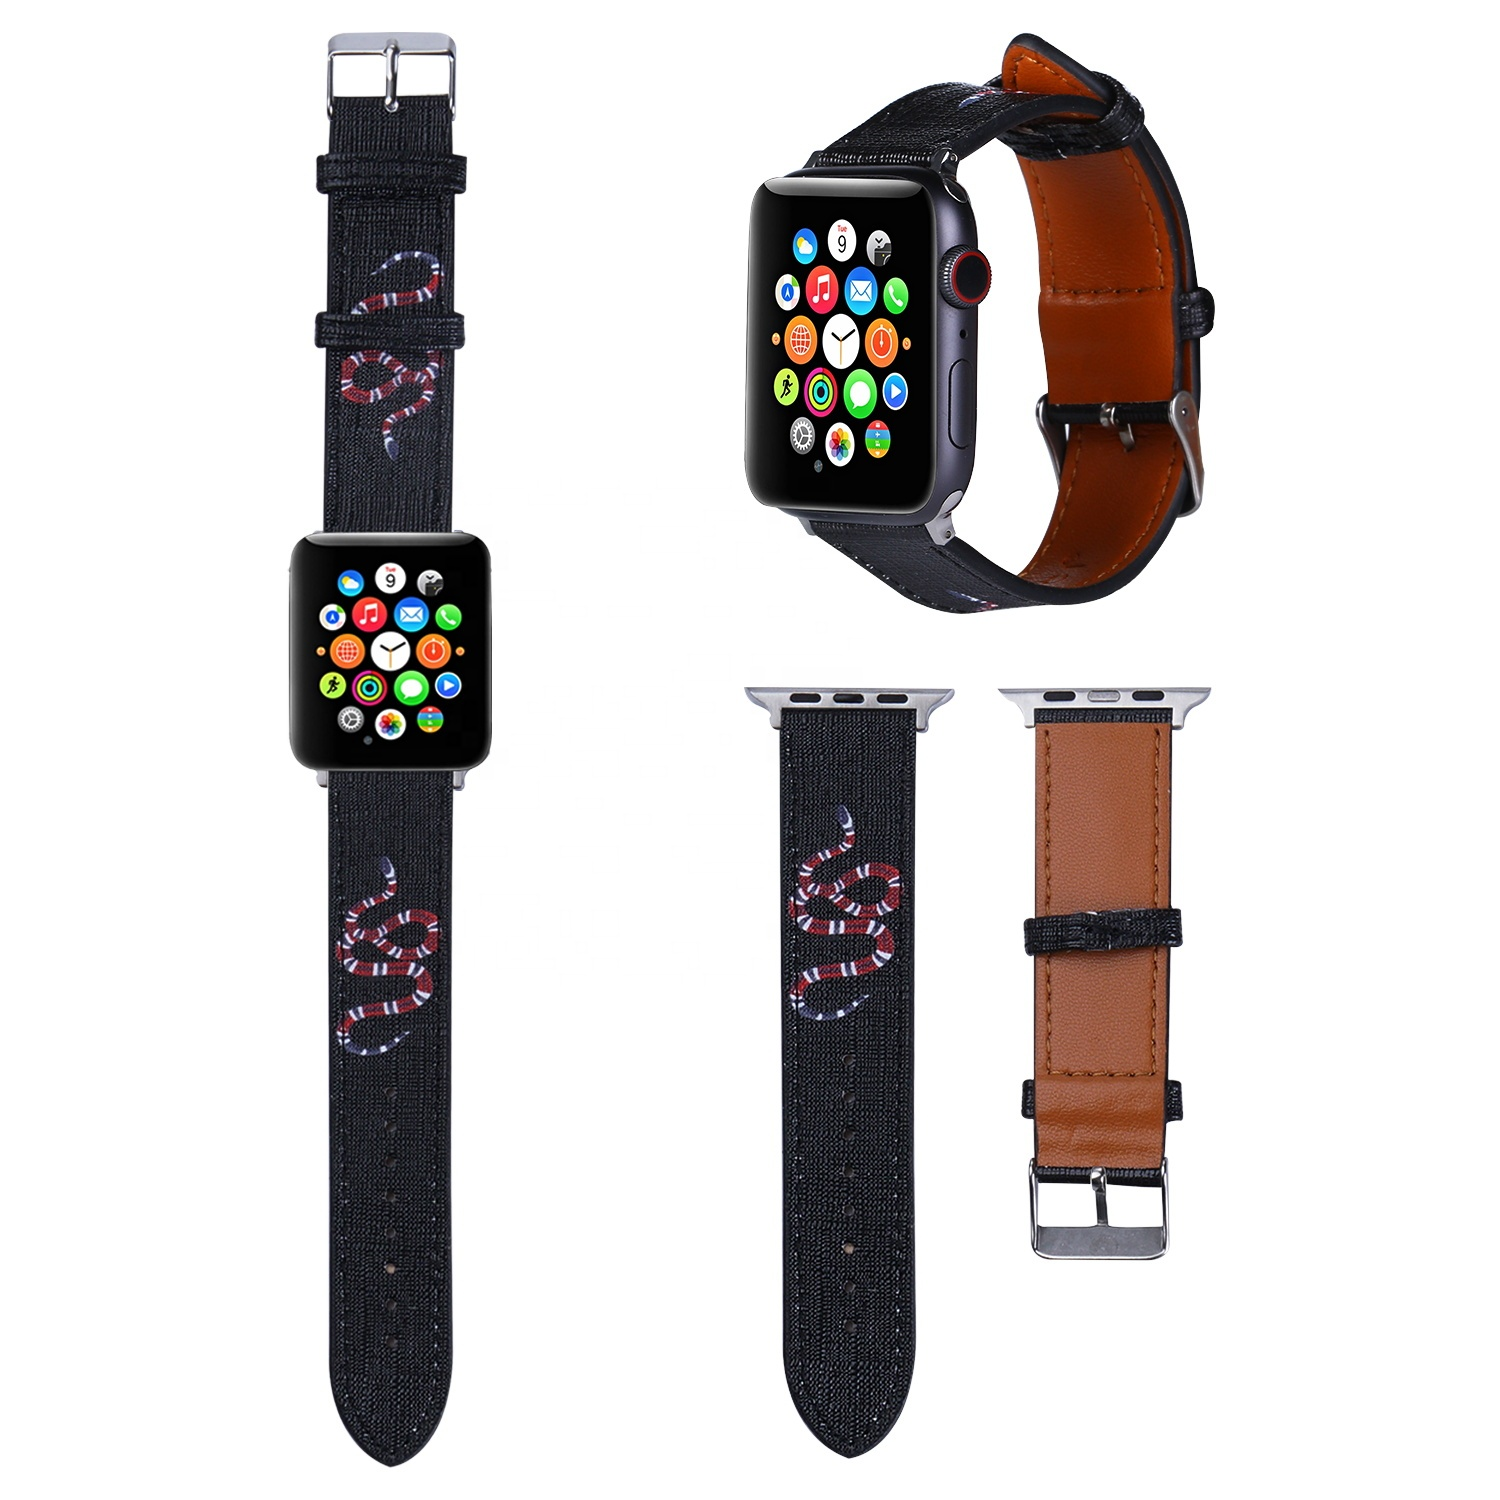 Best Selling Compatible For Apple Watch Band Luxury Design Leather Straps 44mm 42mm 40mm 38mm for iWatch Band 6 5 4 3 2